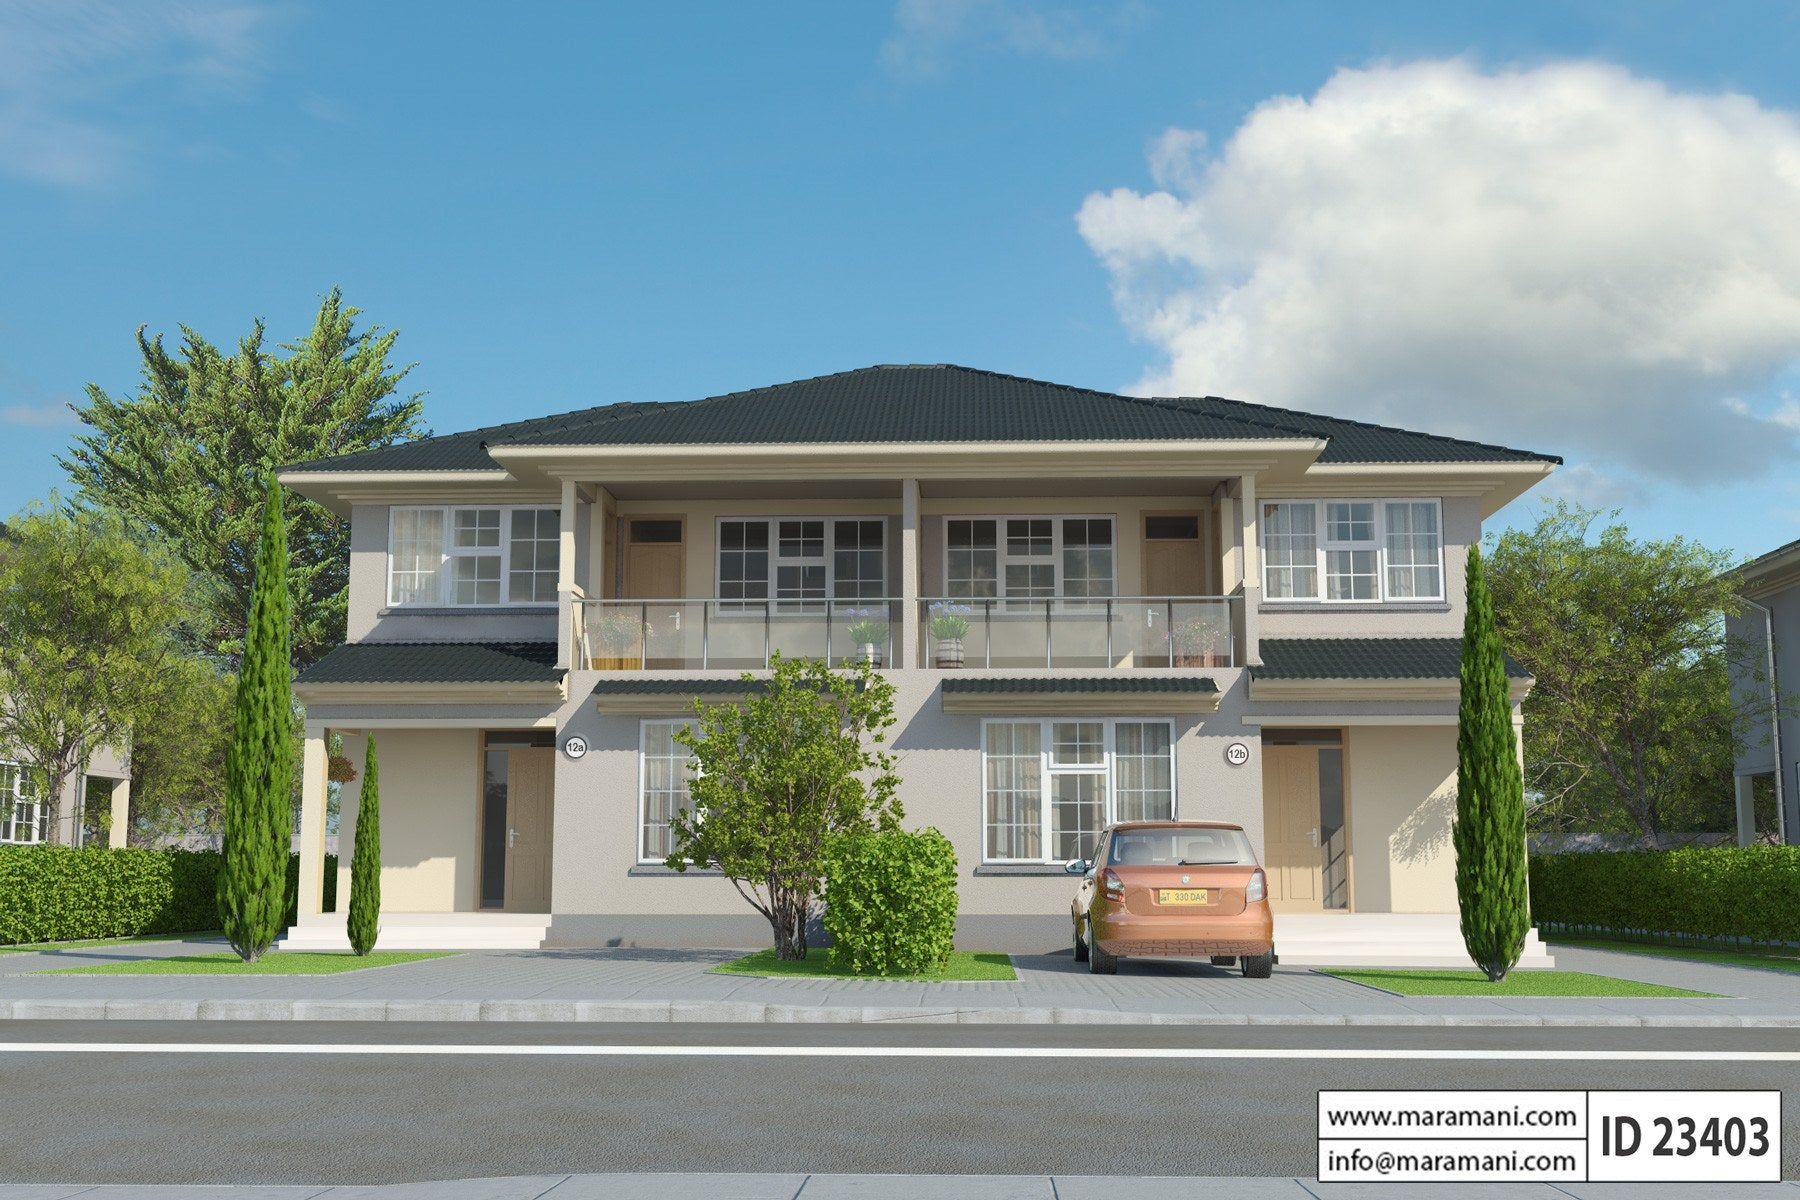 3 bedroom house plans. 3 Bedroom House Plan  ID 23403 Plans Designs for Africa by Maramani